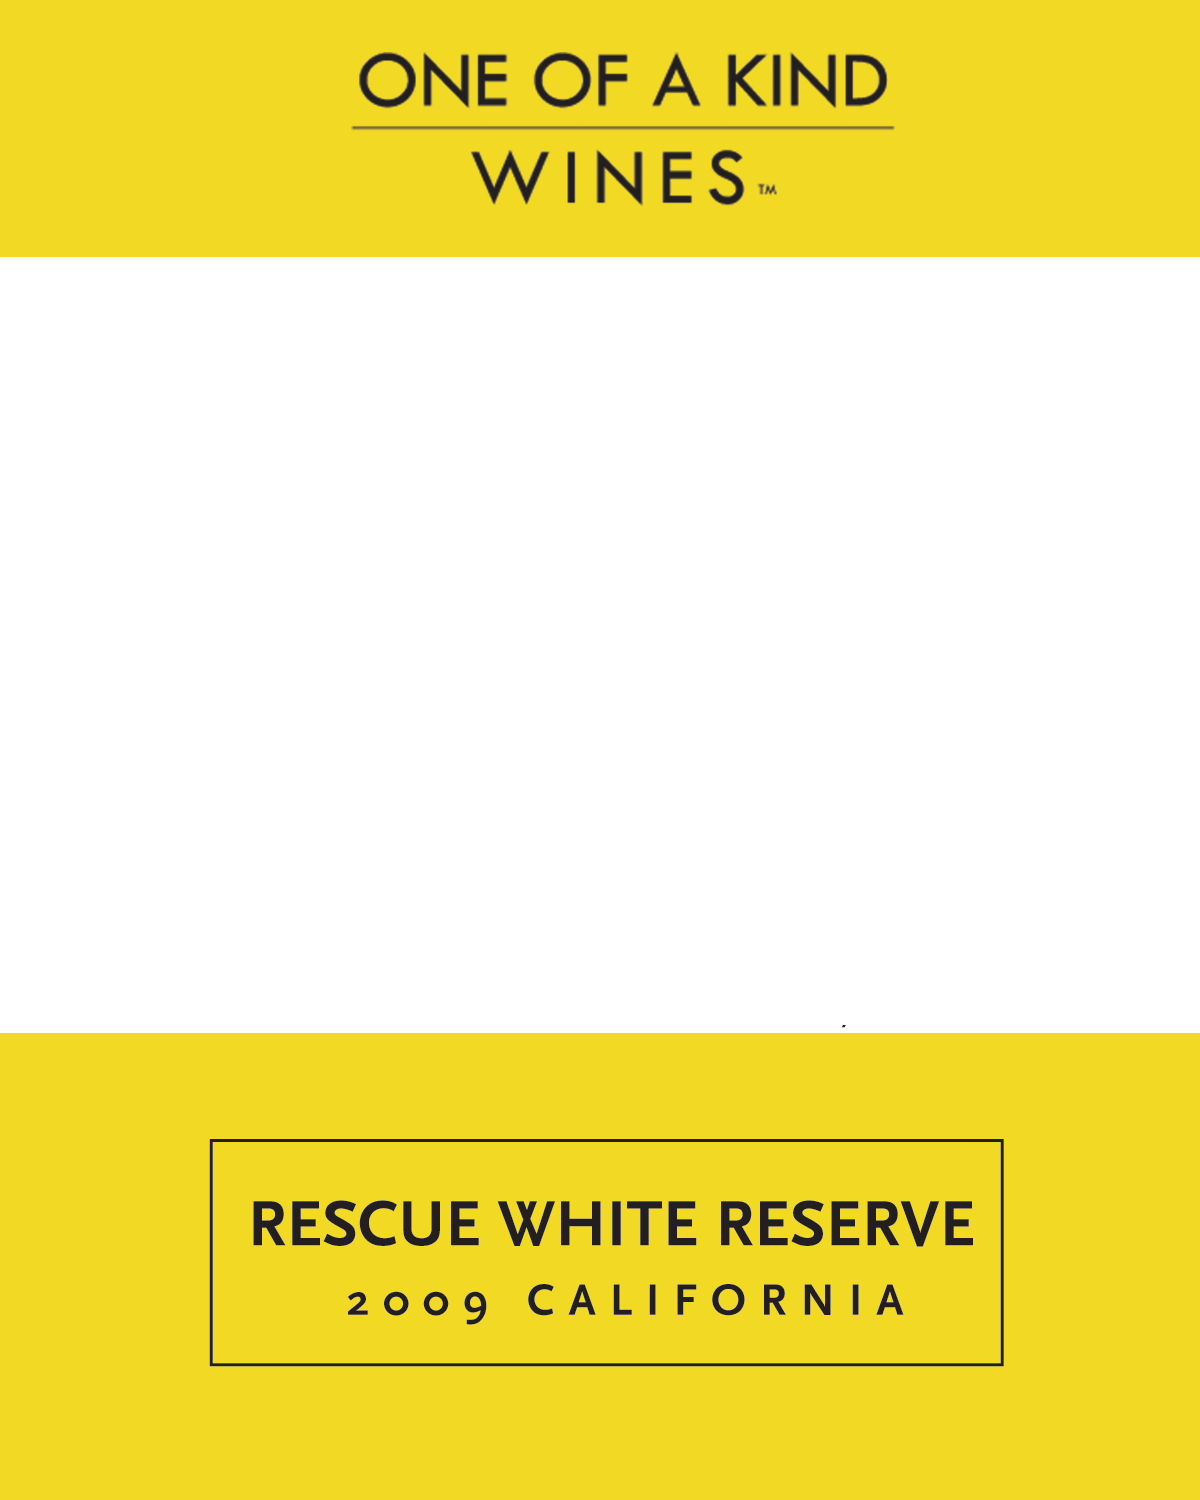 2009 Rescue White Reserve